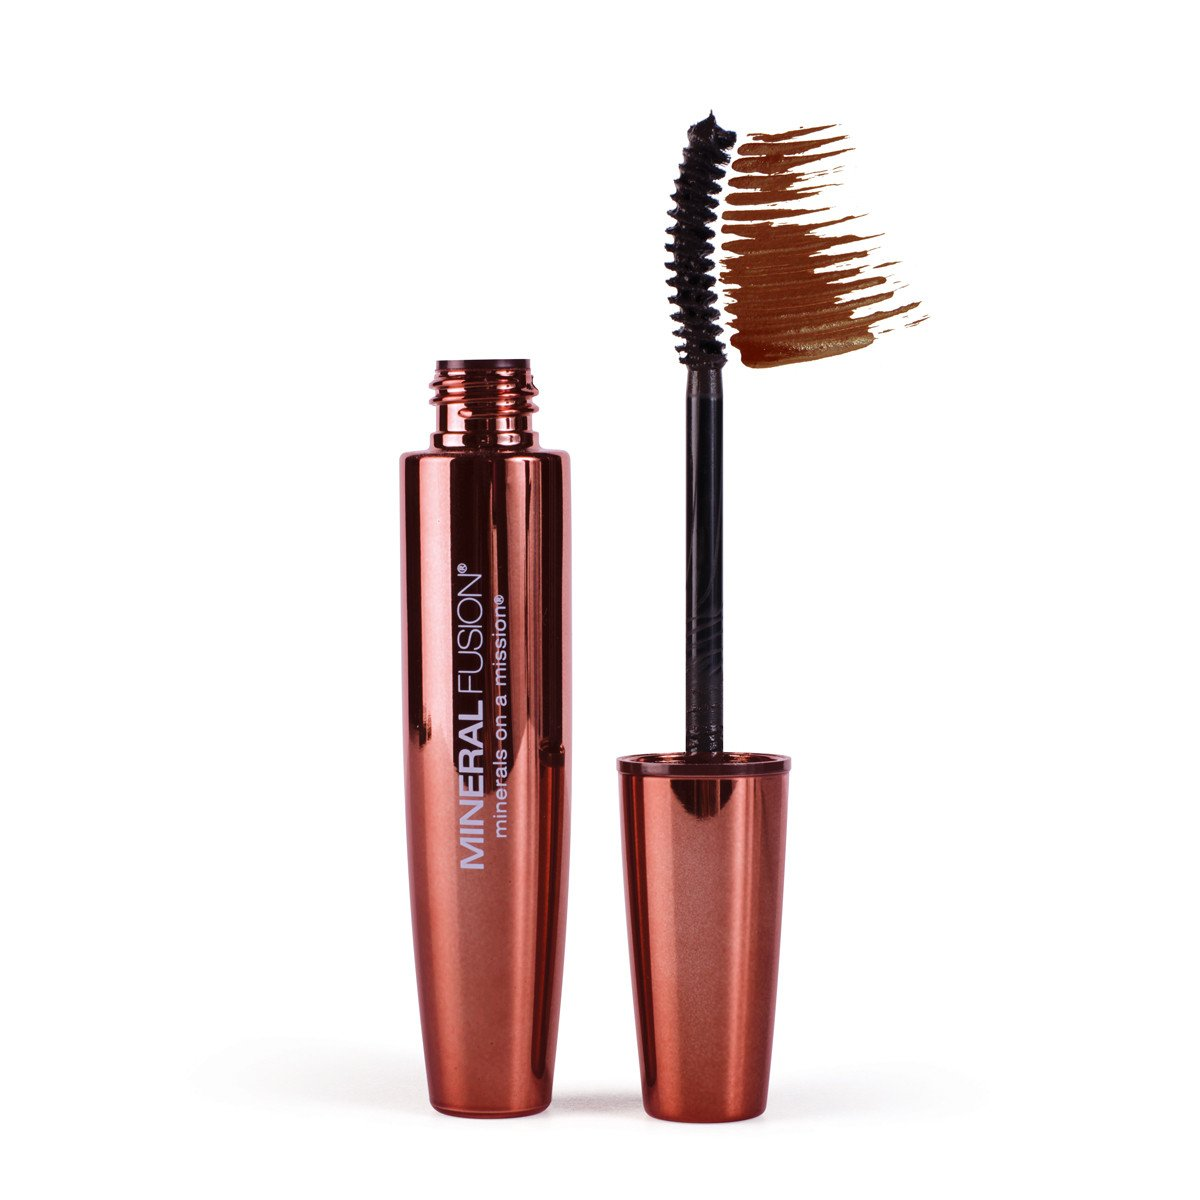 Mineral Fusion Lash Curling Mineral Mascara in Ridge